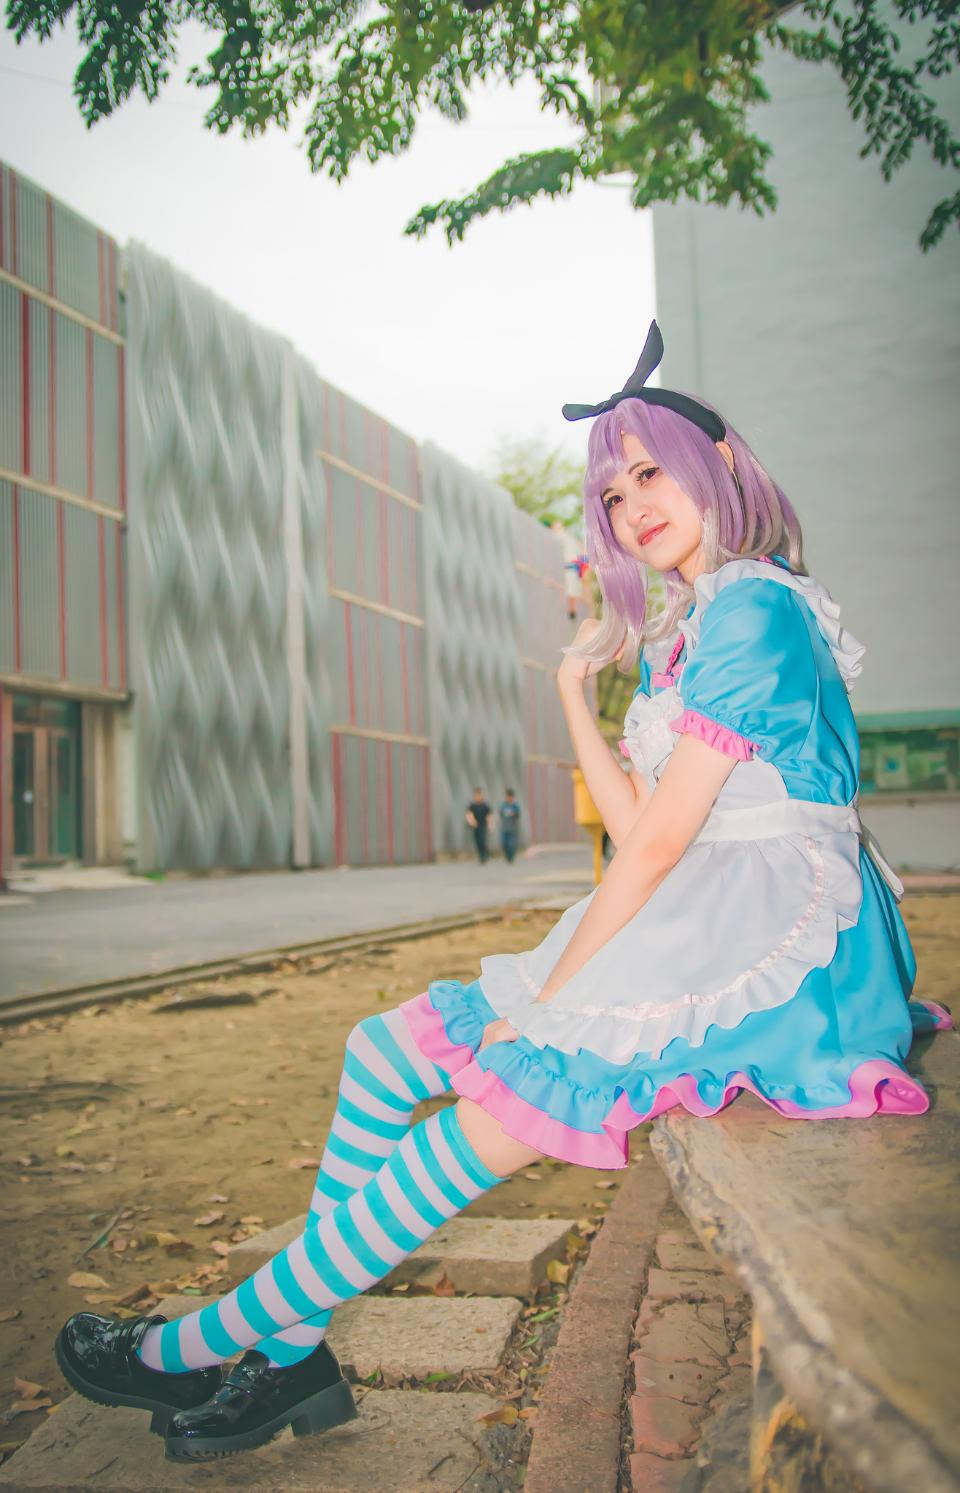 cosplayers dress up as Japanese Manga characters